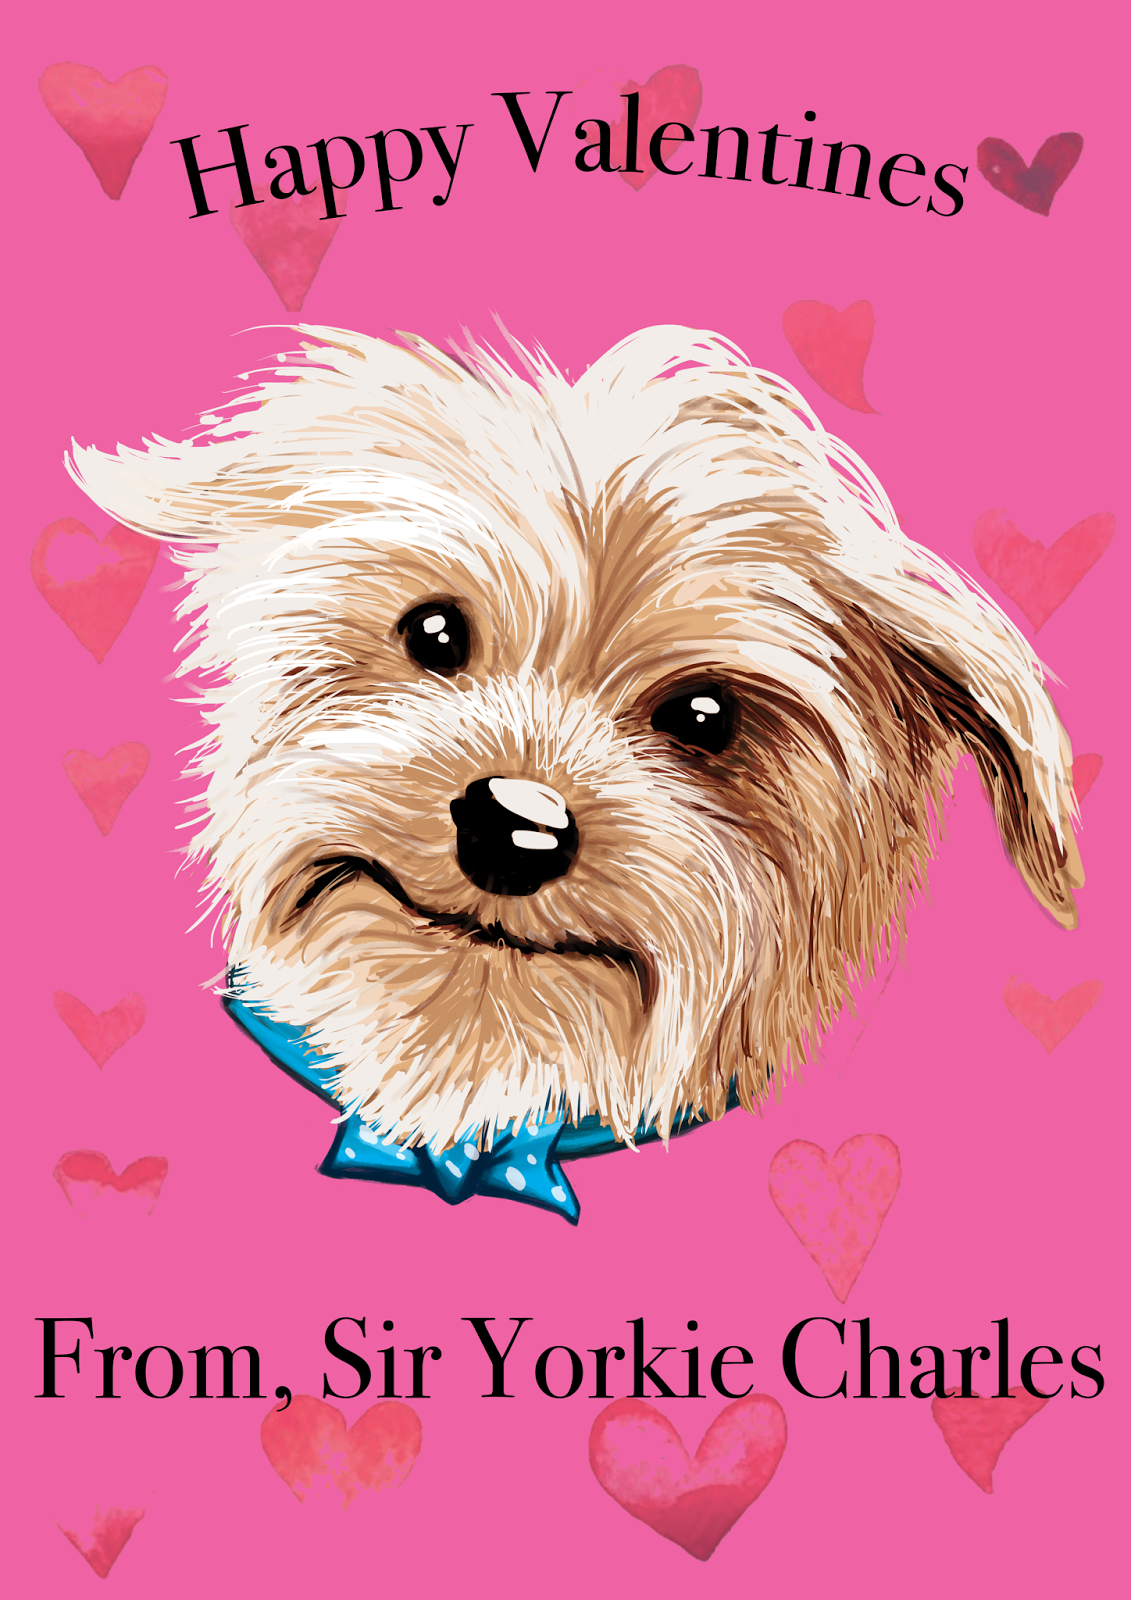 Happy Valentines Day from Sir Yorkie Charles